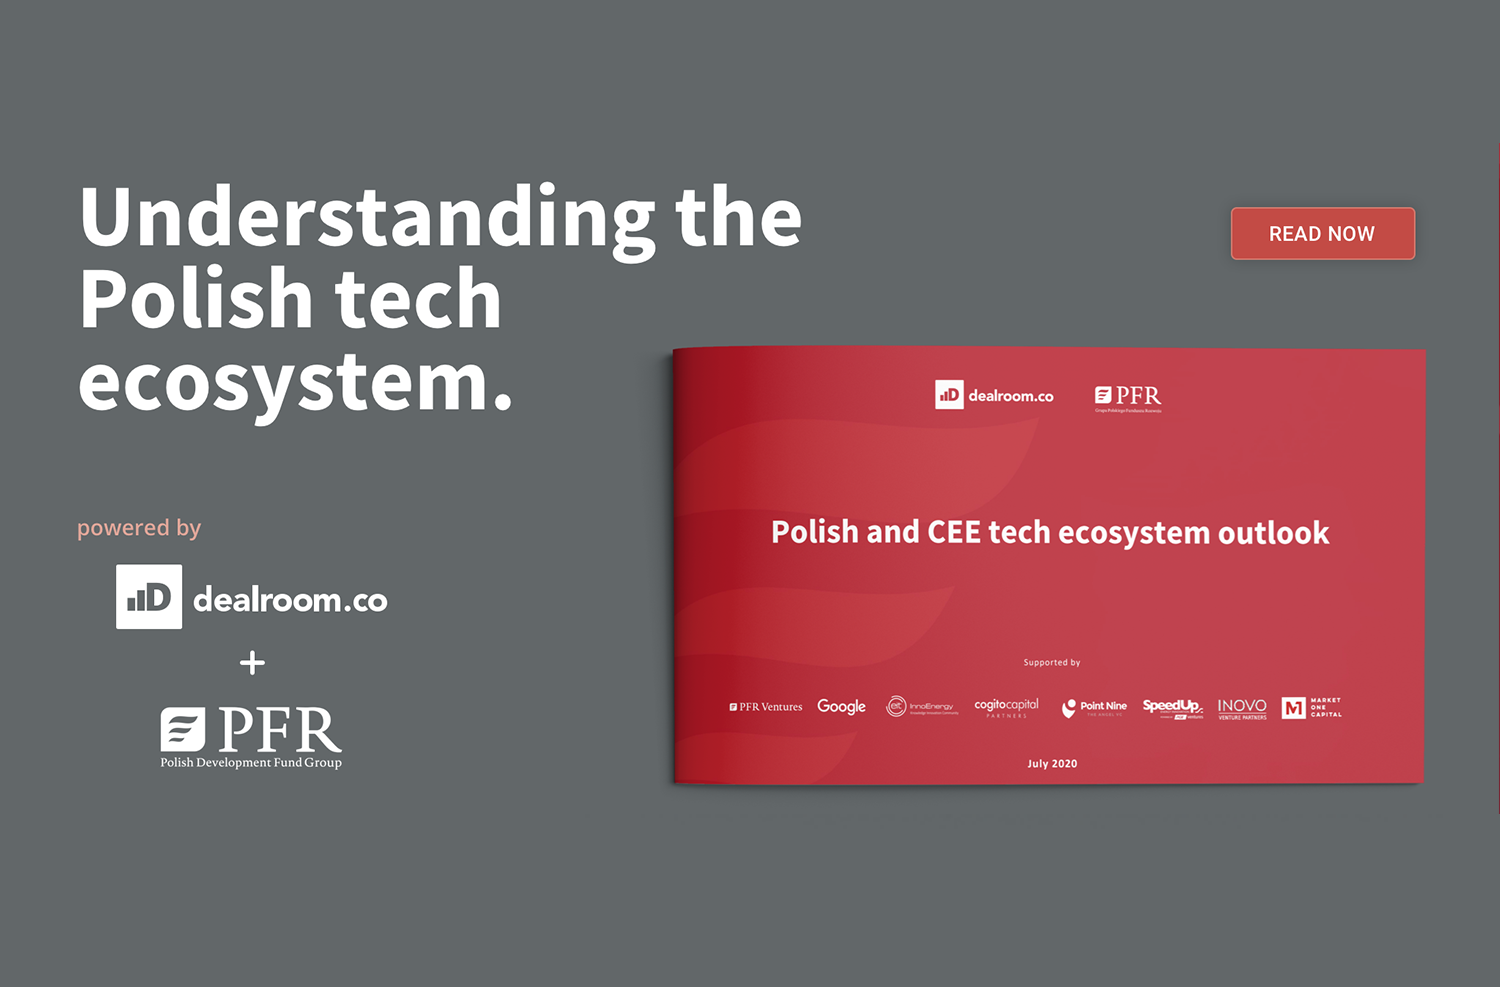 Raport PFR i dealroom: Polish and CEE tech ecosystem outlook